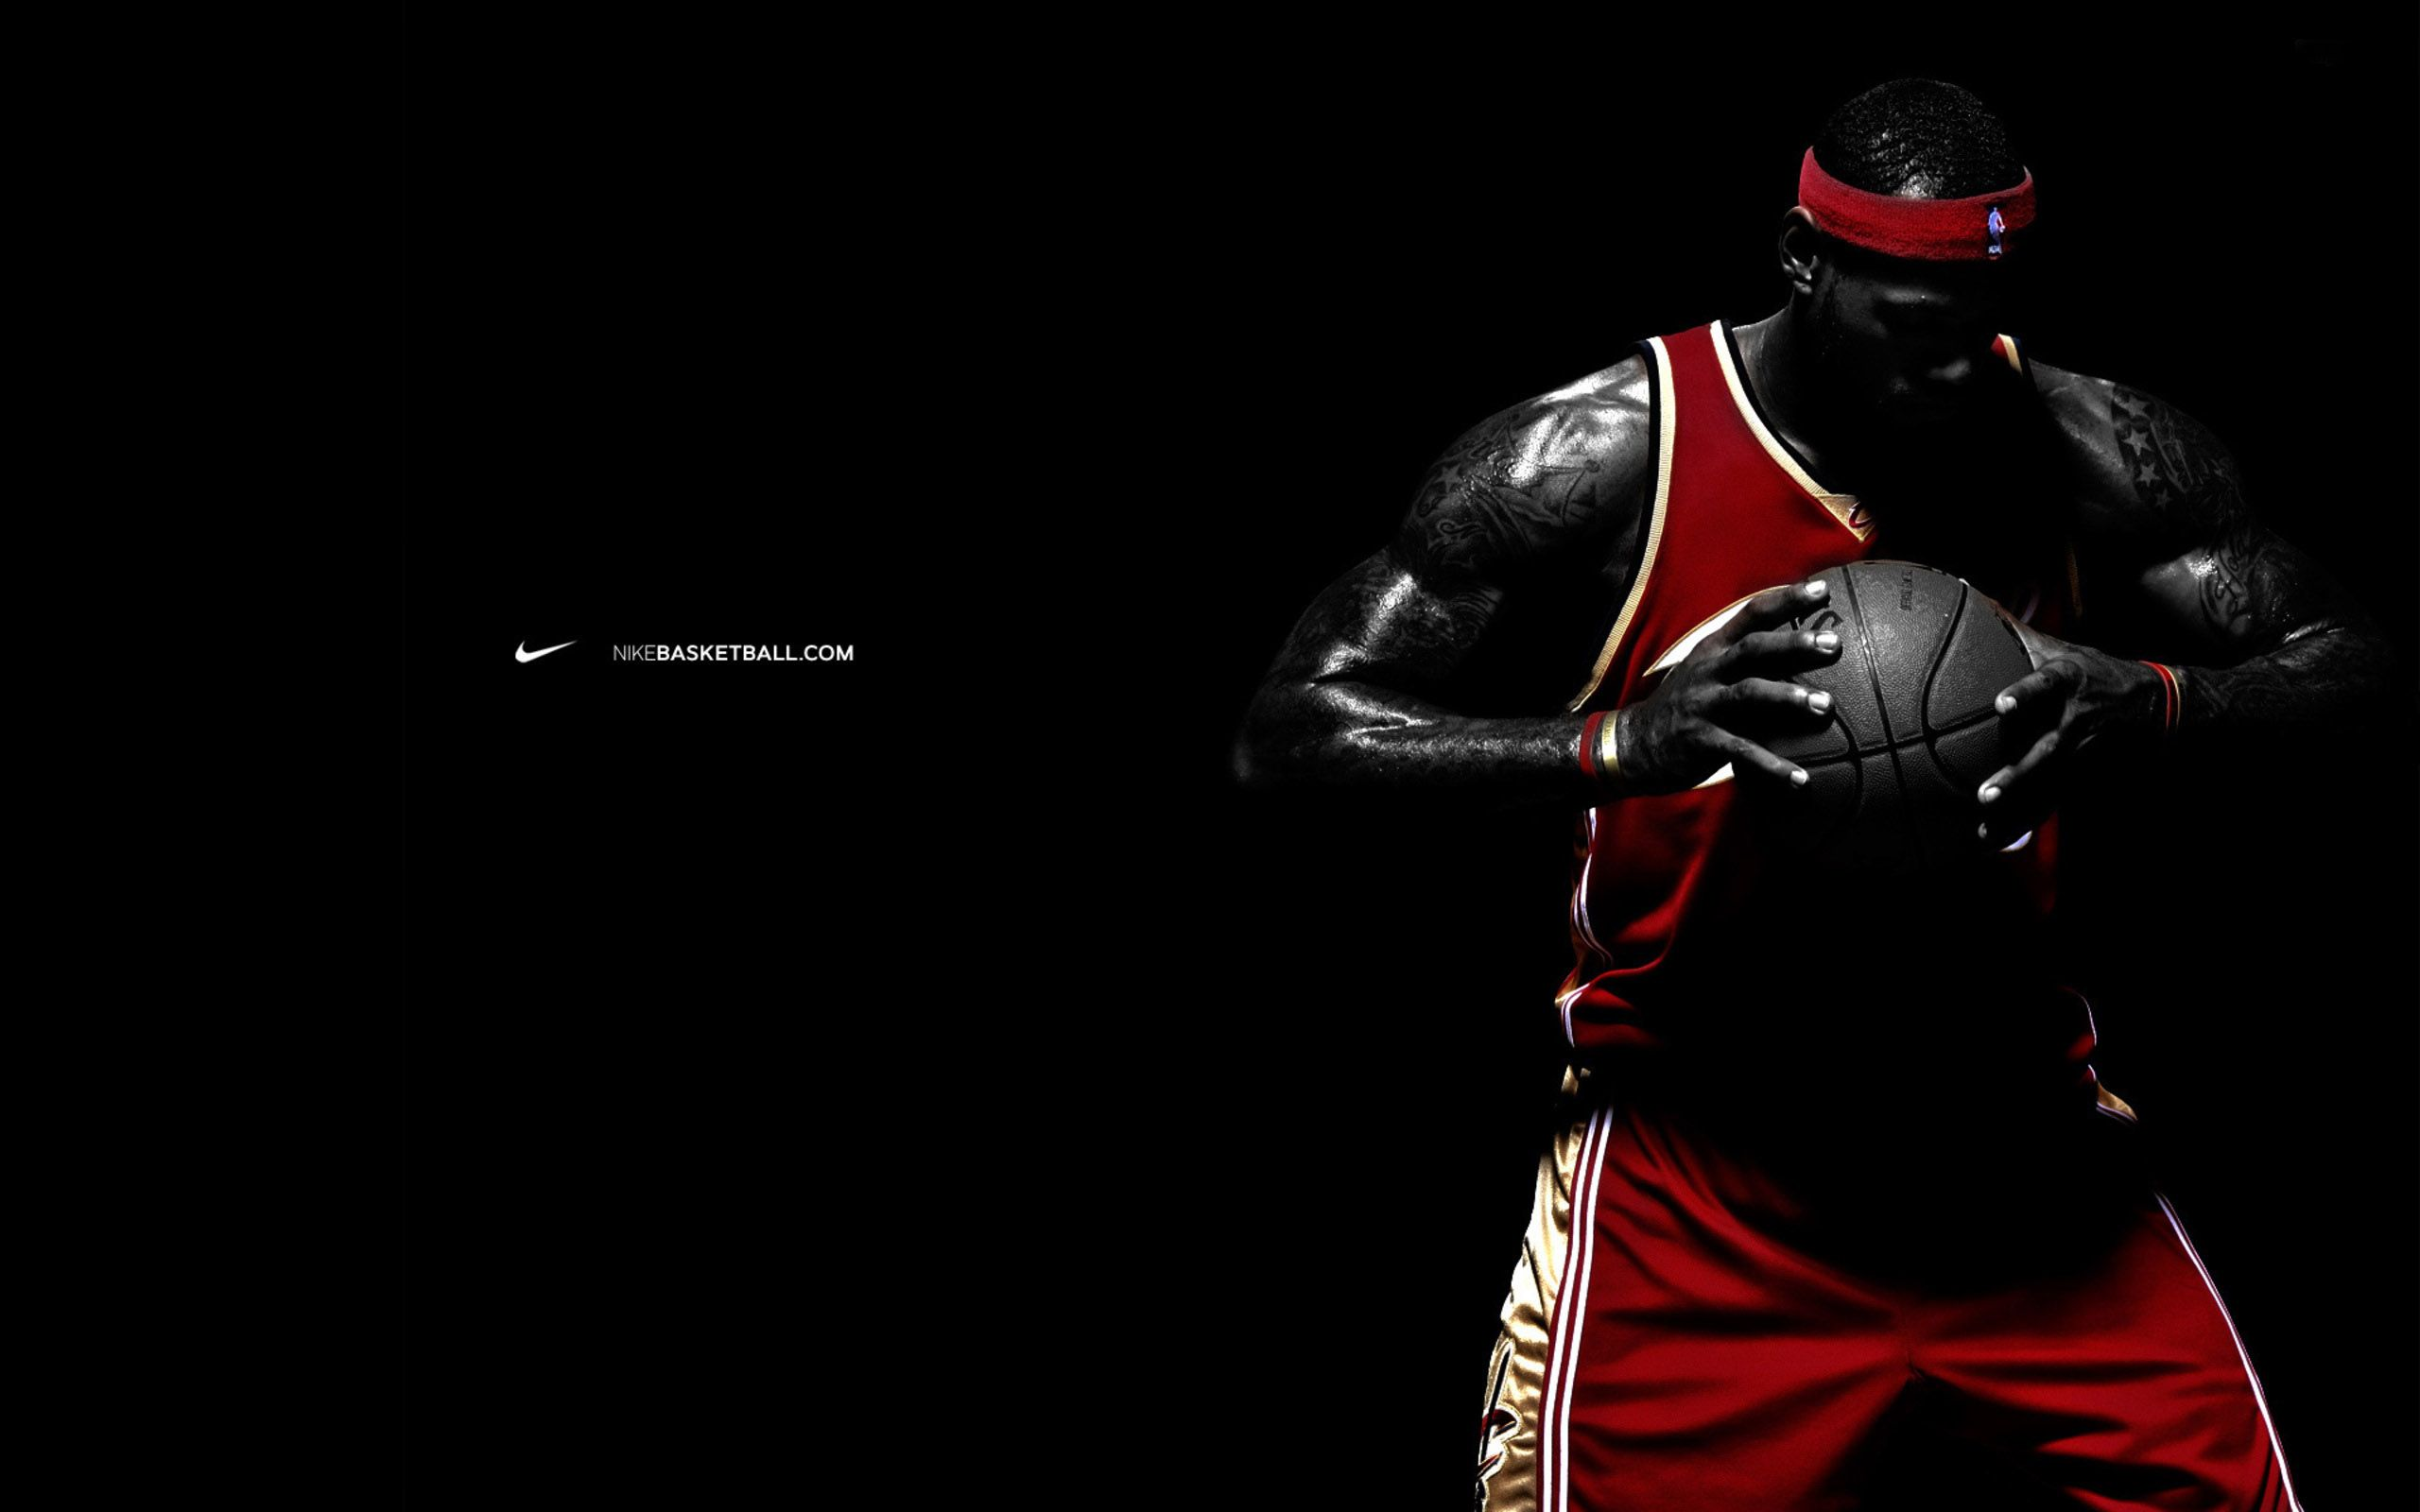 Le Bron James NBA - Le Bron James NBA